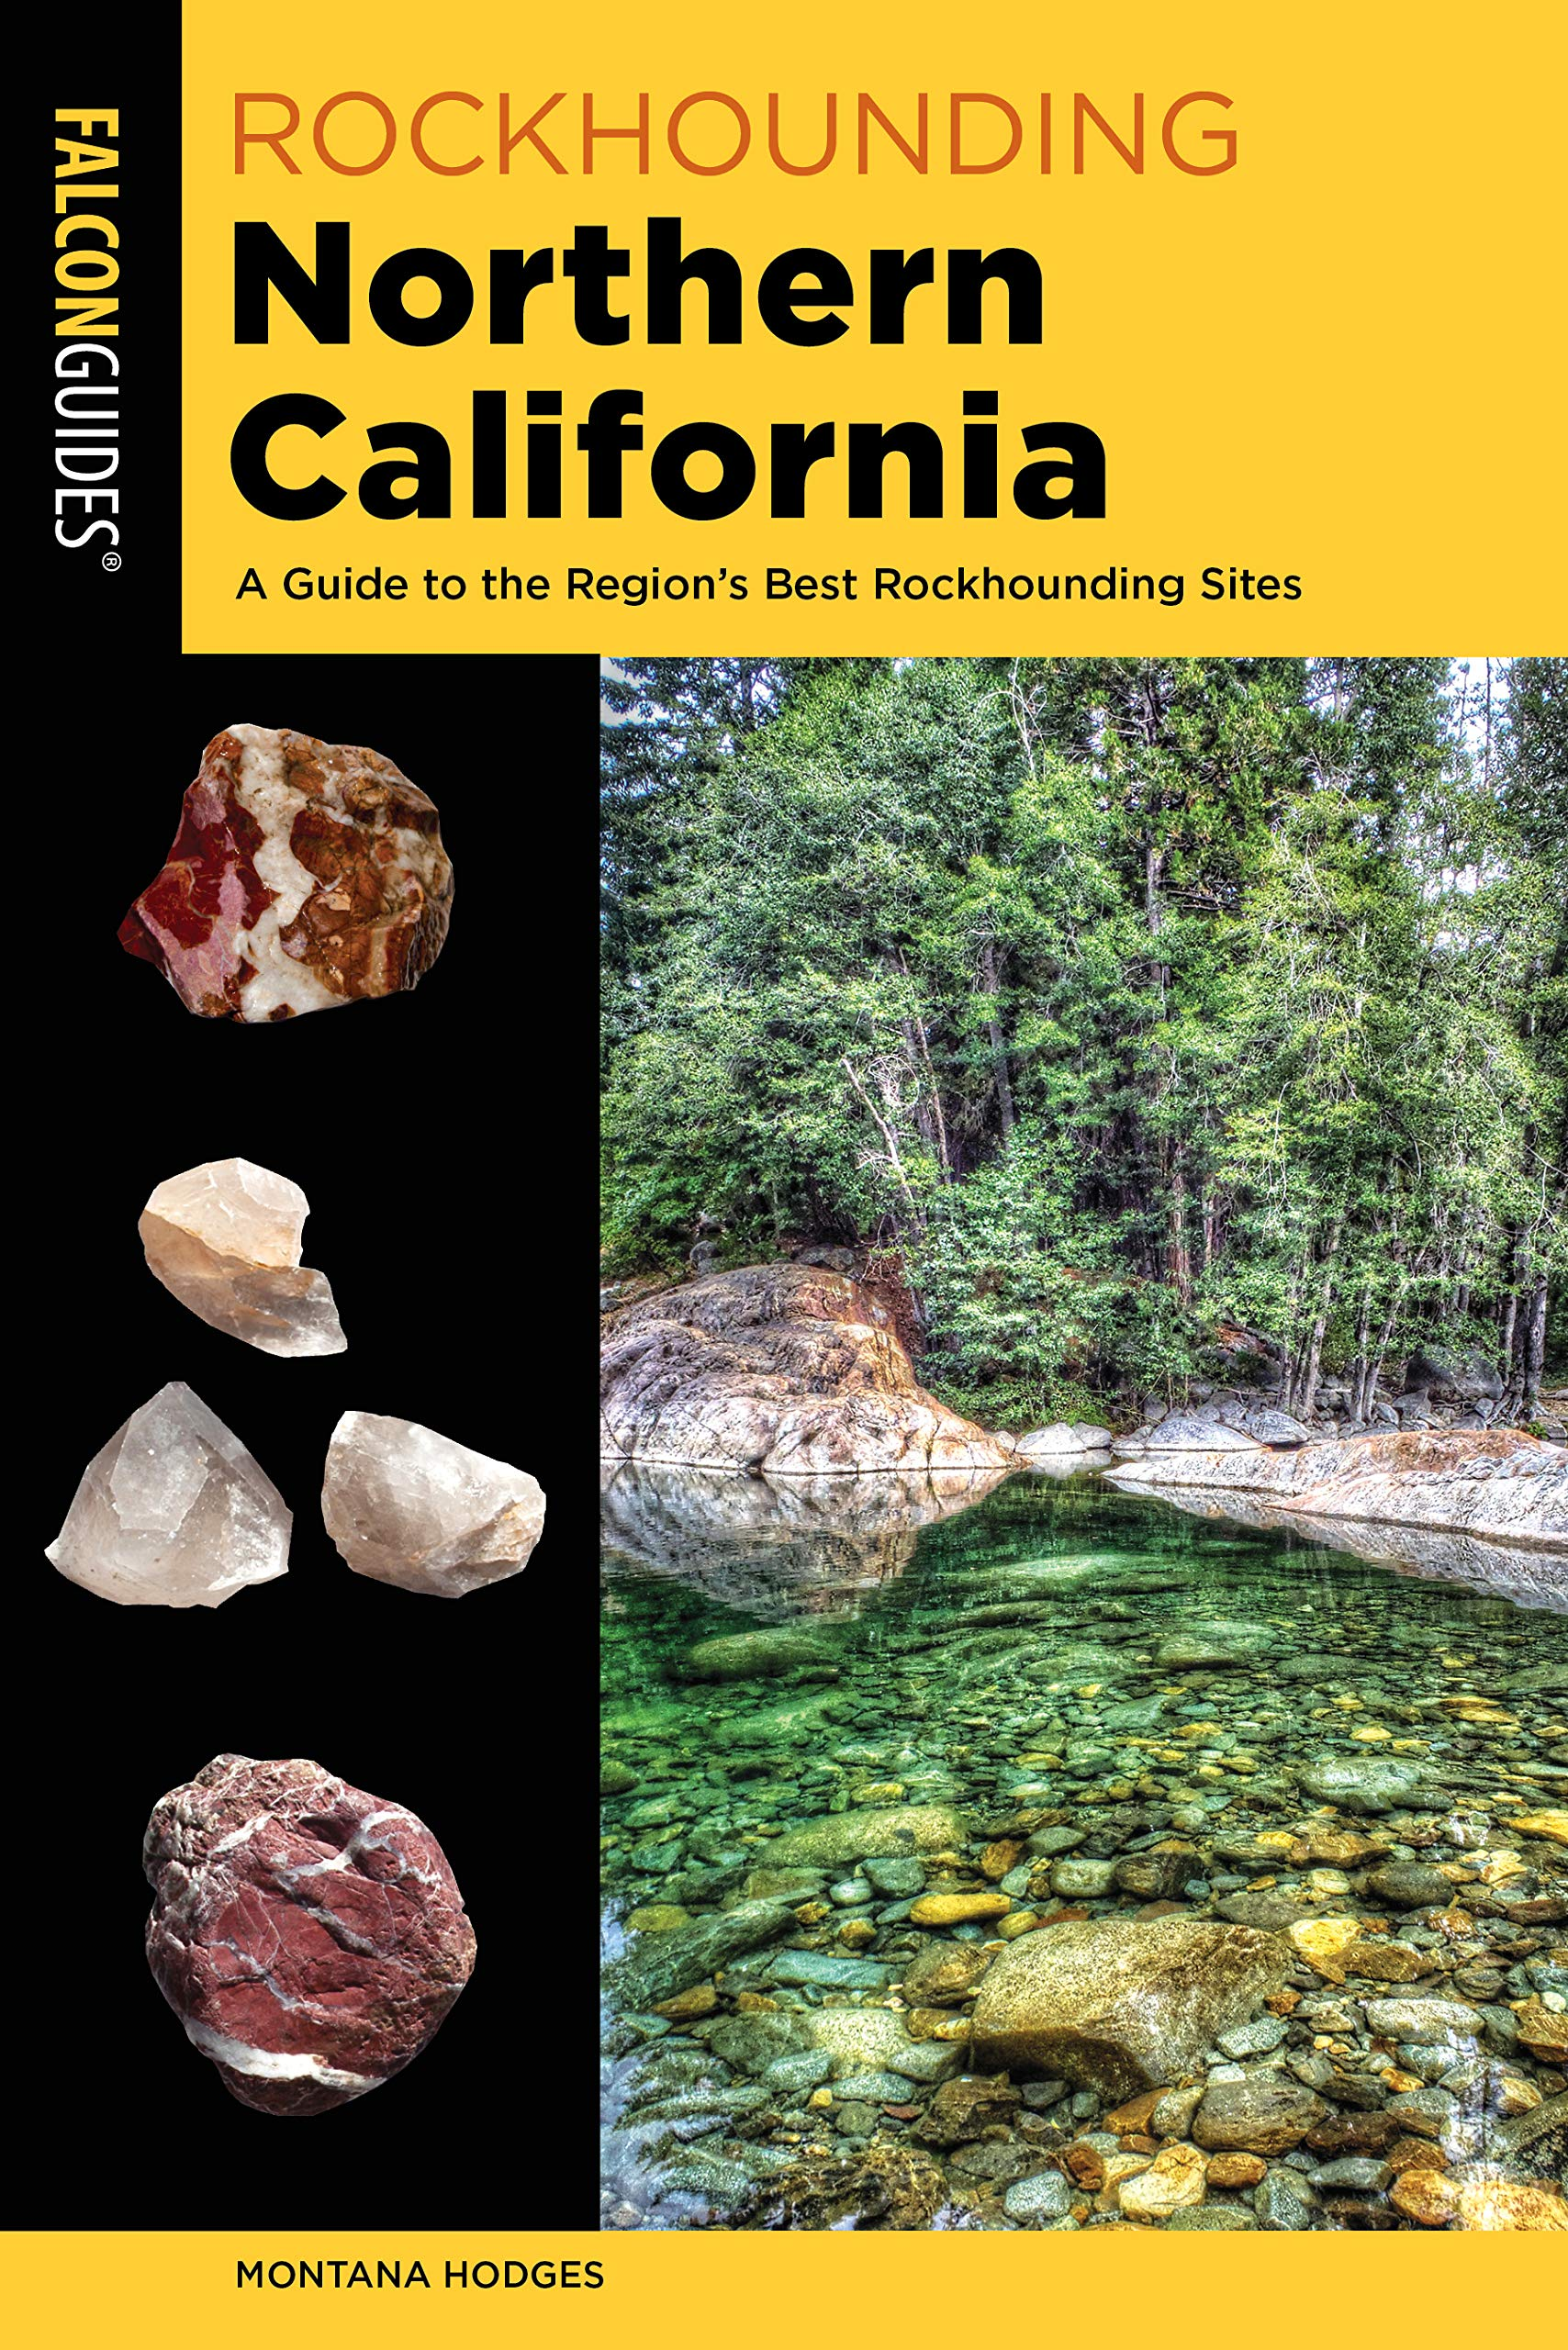 Rockhounding Northern California: A Guide to the Region's Best Rockhounding Sites (Rockhounding Series)